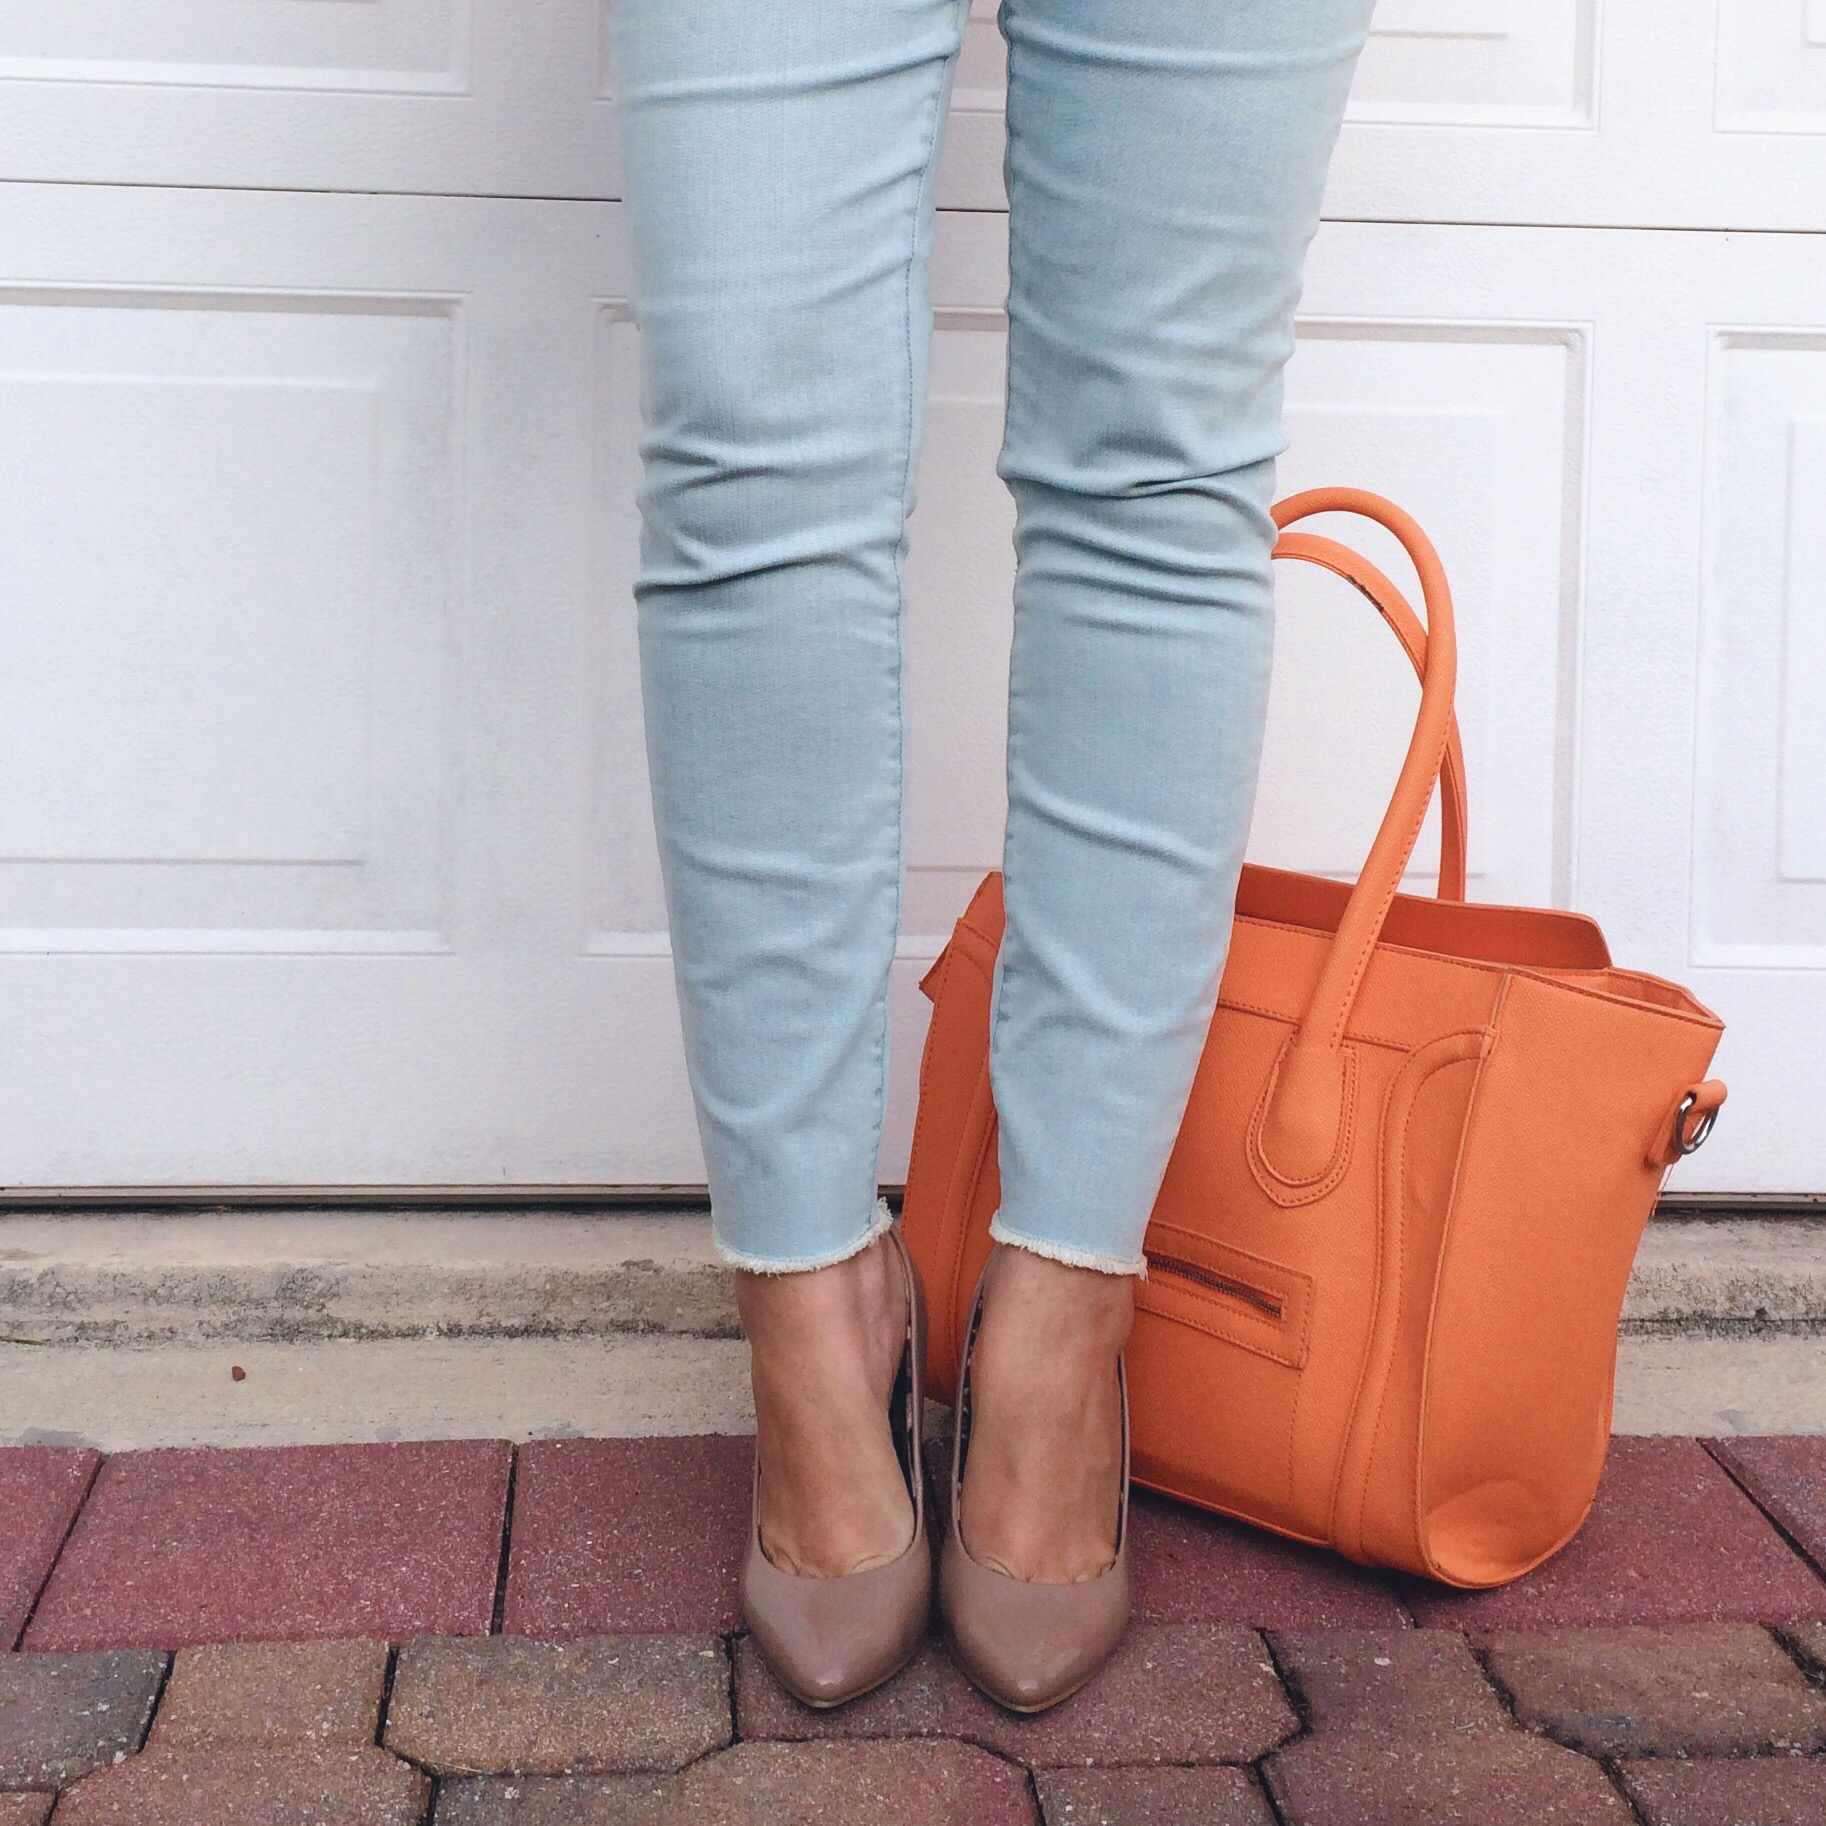 Loft Curvy High Waist Ankle Skinnies, Light Wash Jeans, Style Blogger, Summer Outfit Ideas